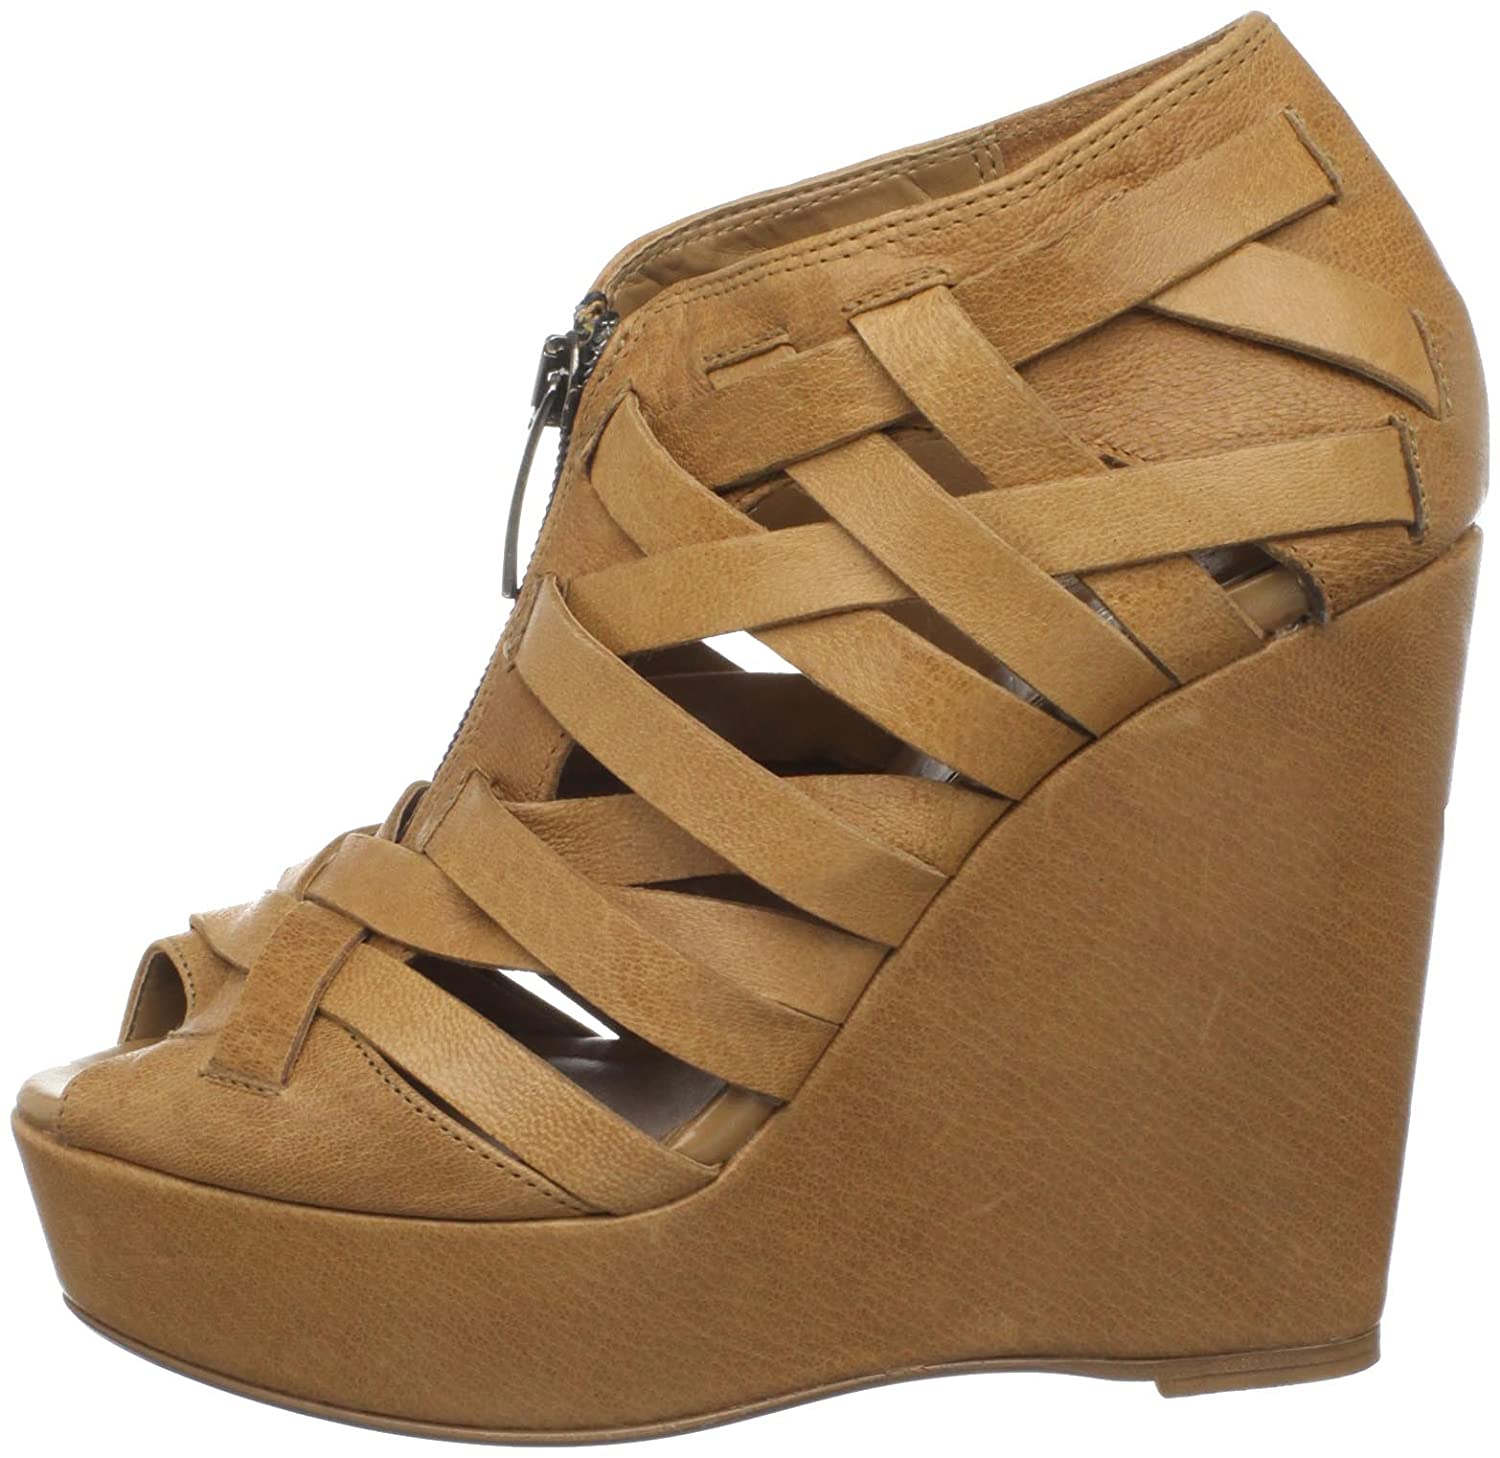 Rough Justice Womens Ceilo 2 Wedge Sandal